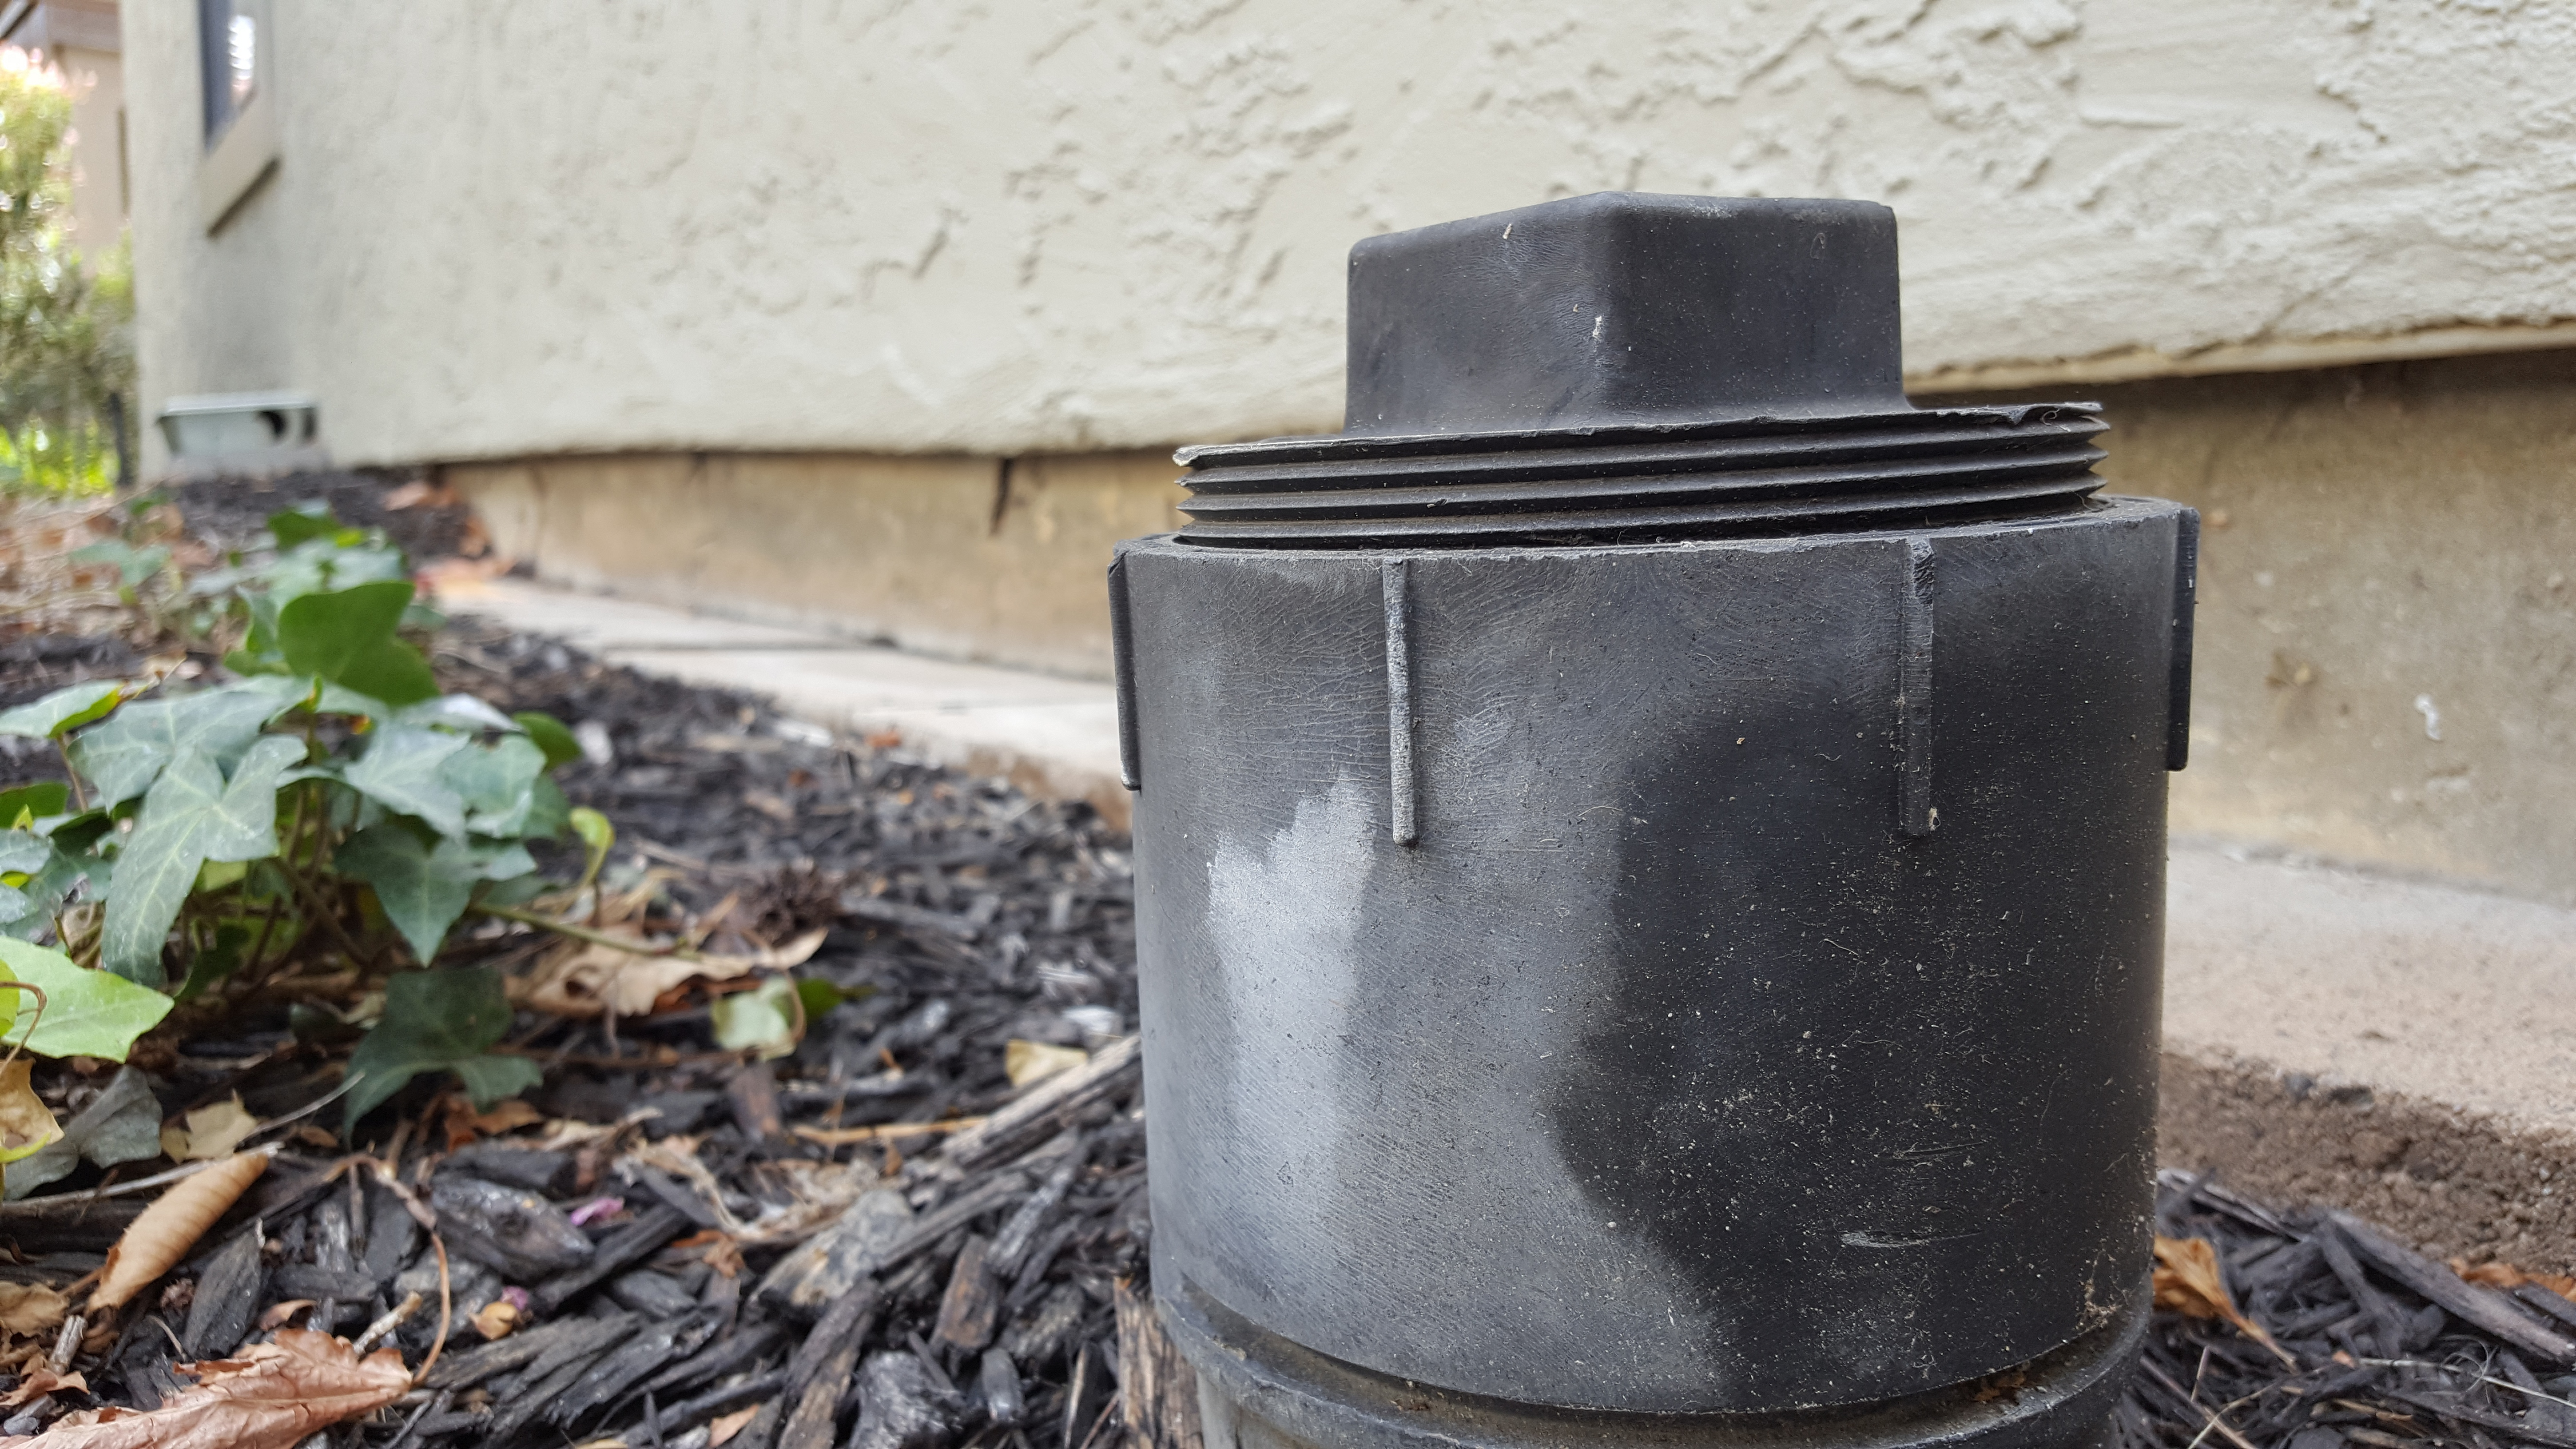 What Is a Sewer Cleanout?